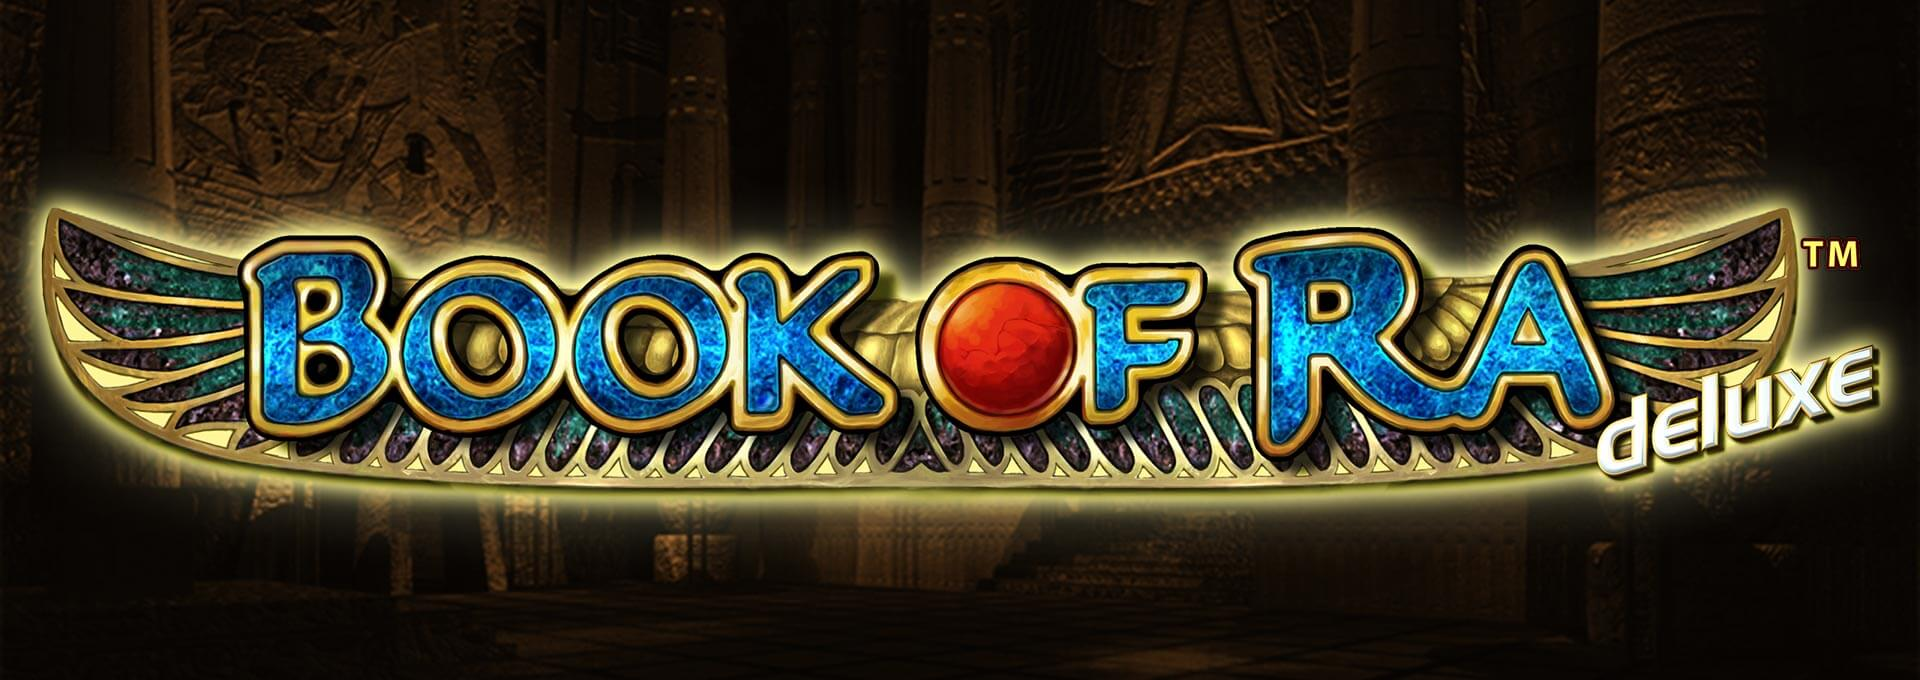 online casino lastschrift book of ra deluxe free